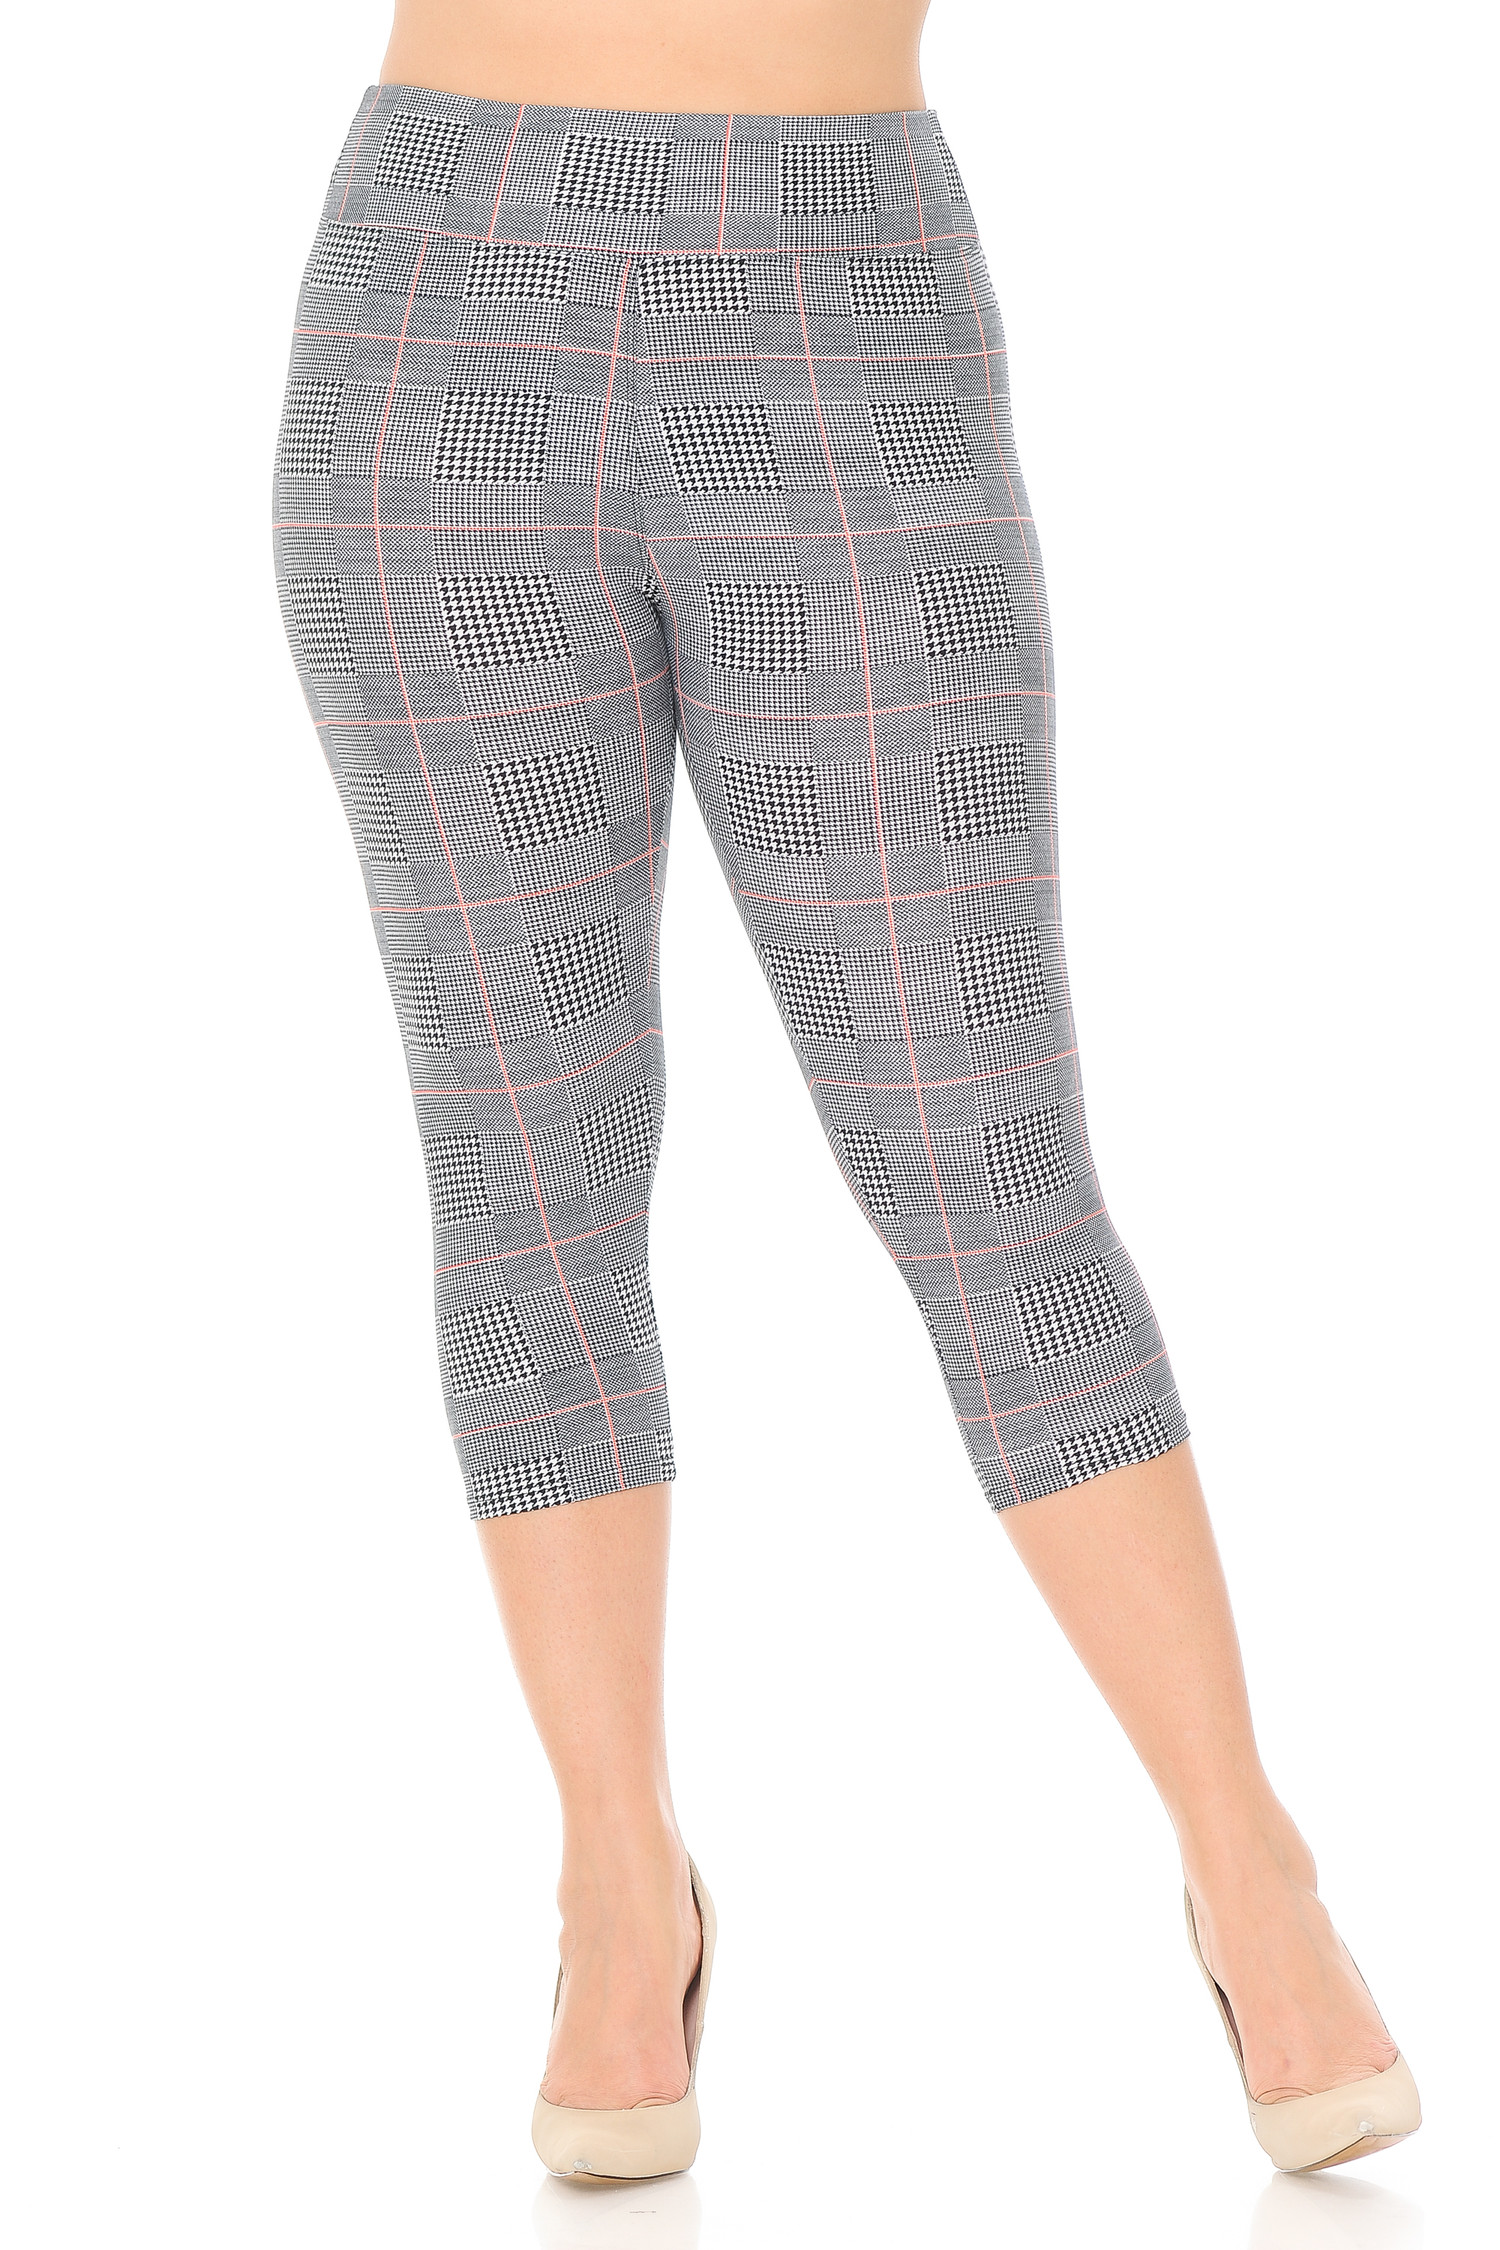 Brushed  Coral Accent Textured Houndstooth High Waist Plus Size Capris - 3 Inch